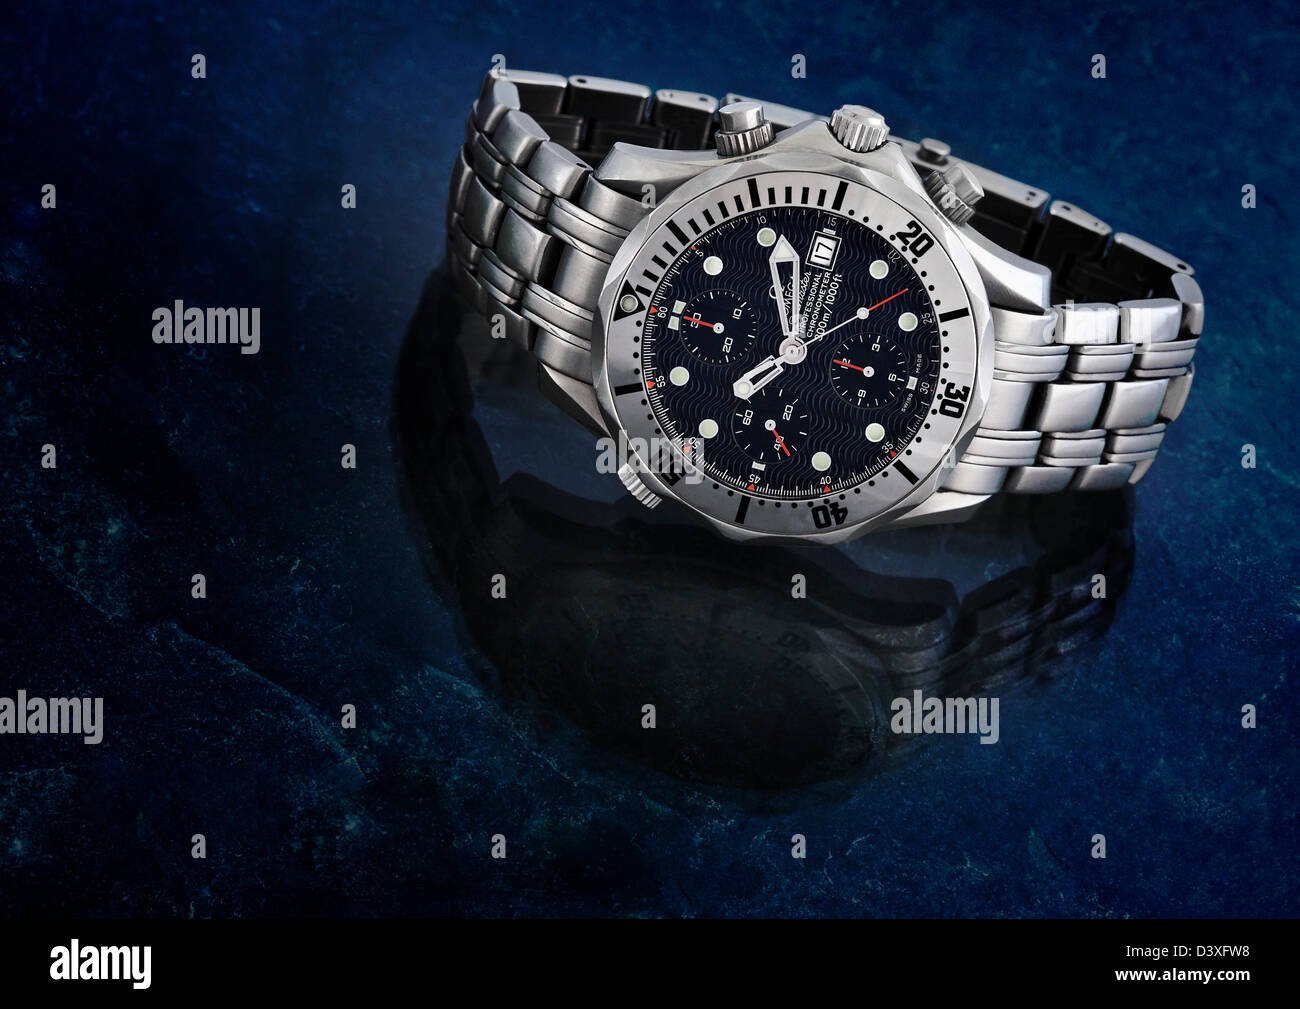 OMEGA Gents 300 M Chronograph Diver Watch - Stock Image